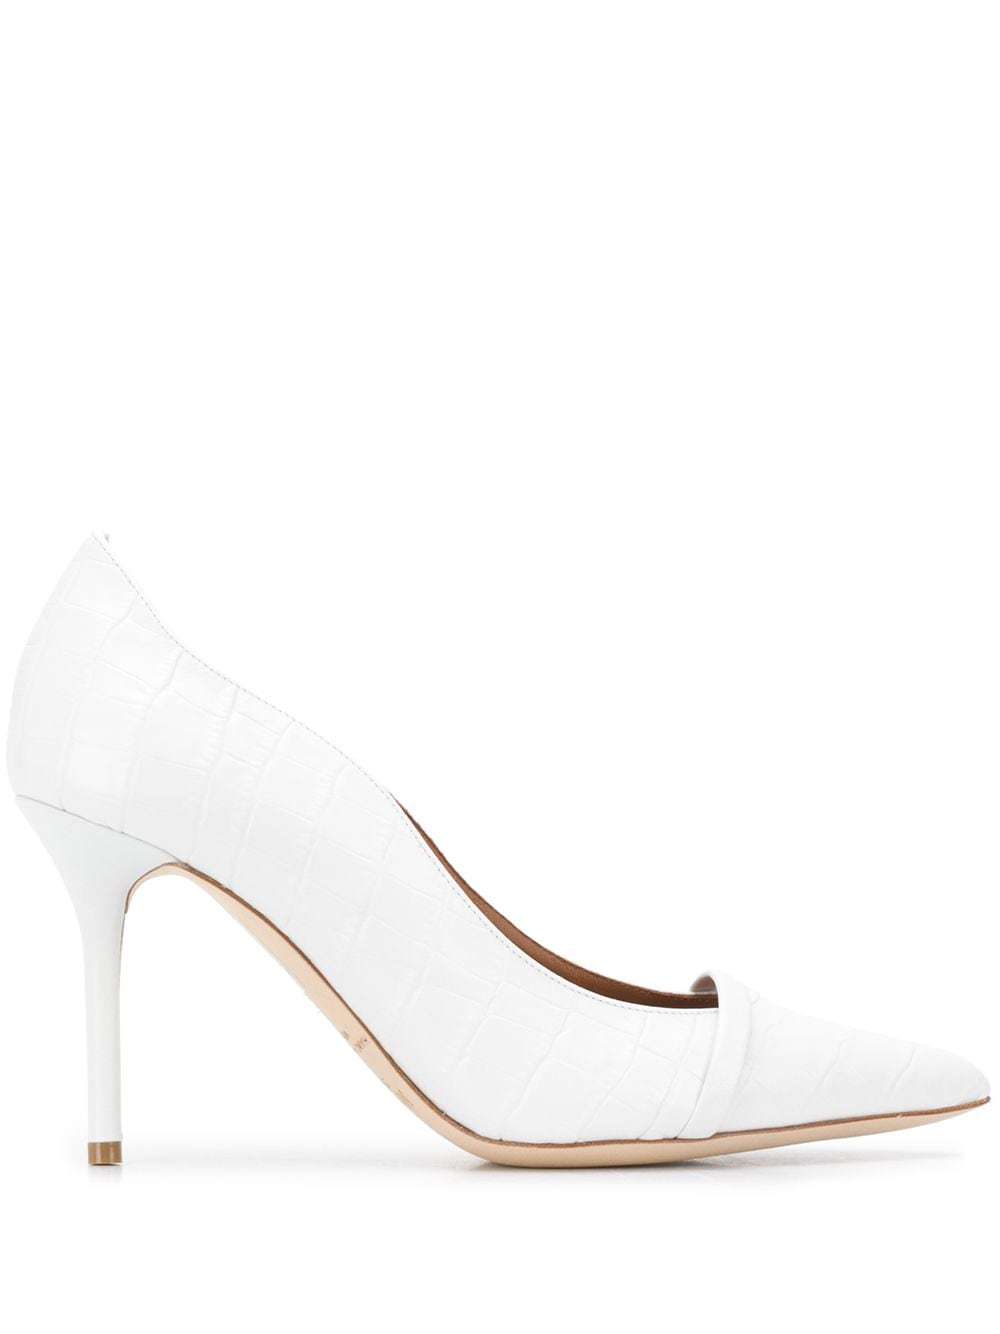 Maybelle Leather Pumps